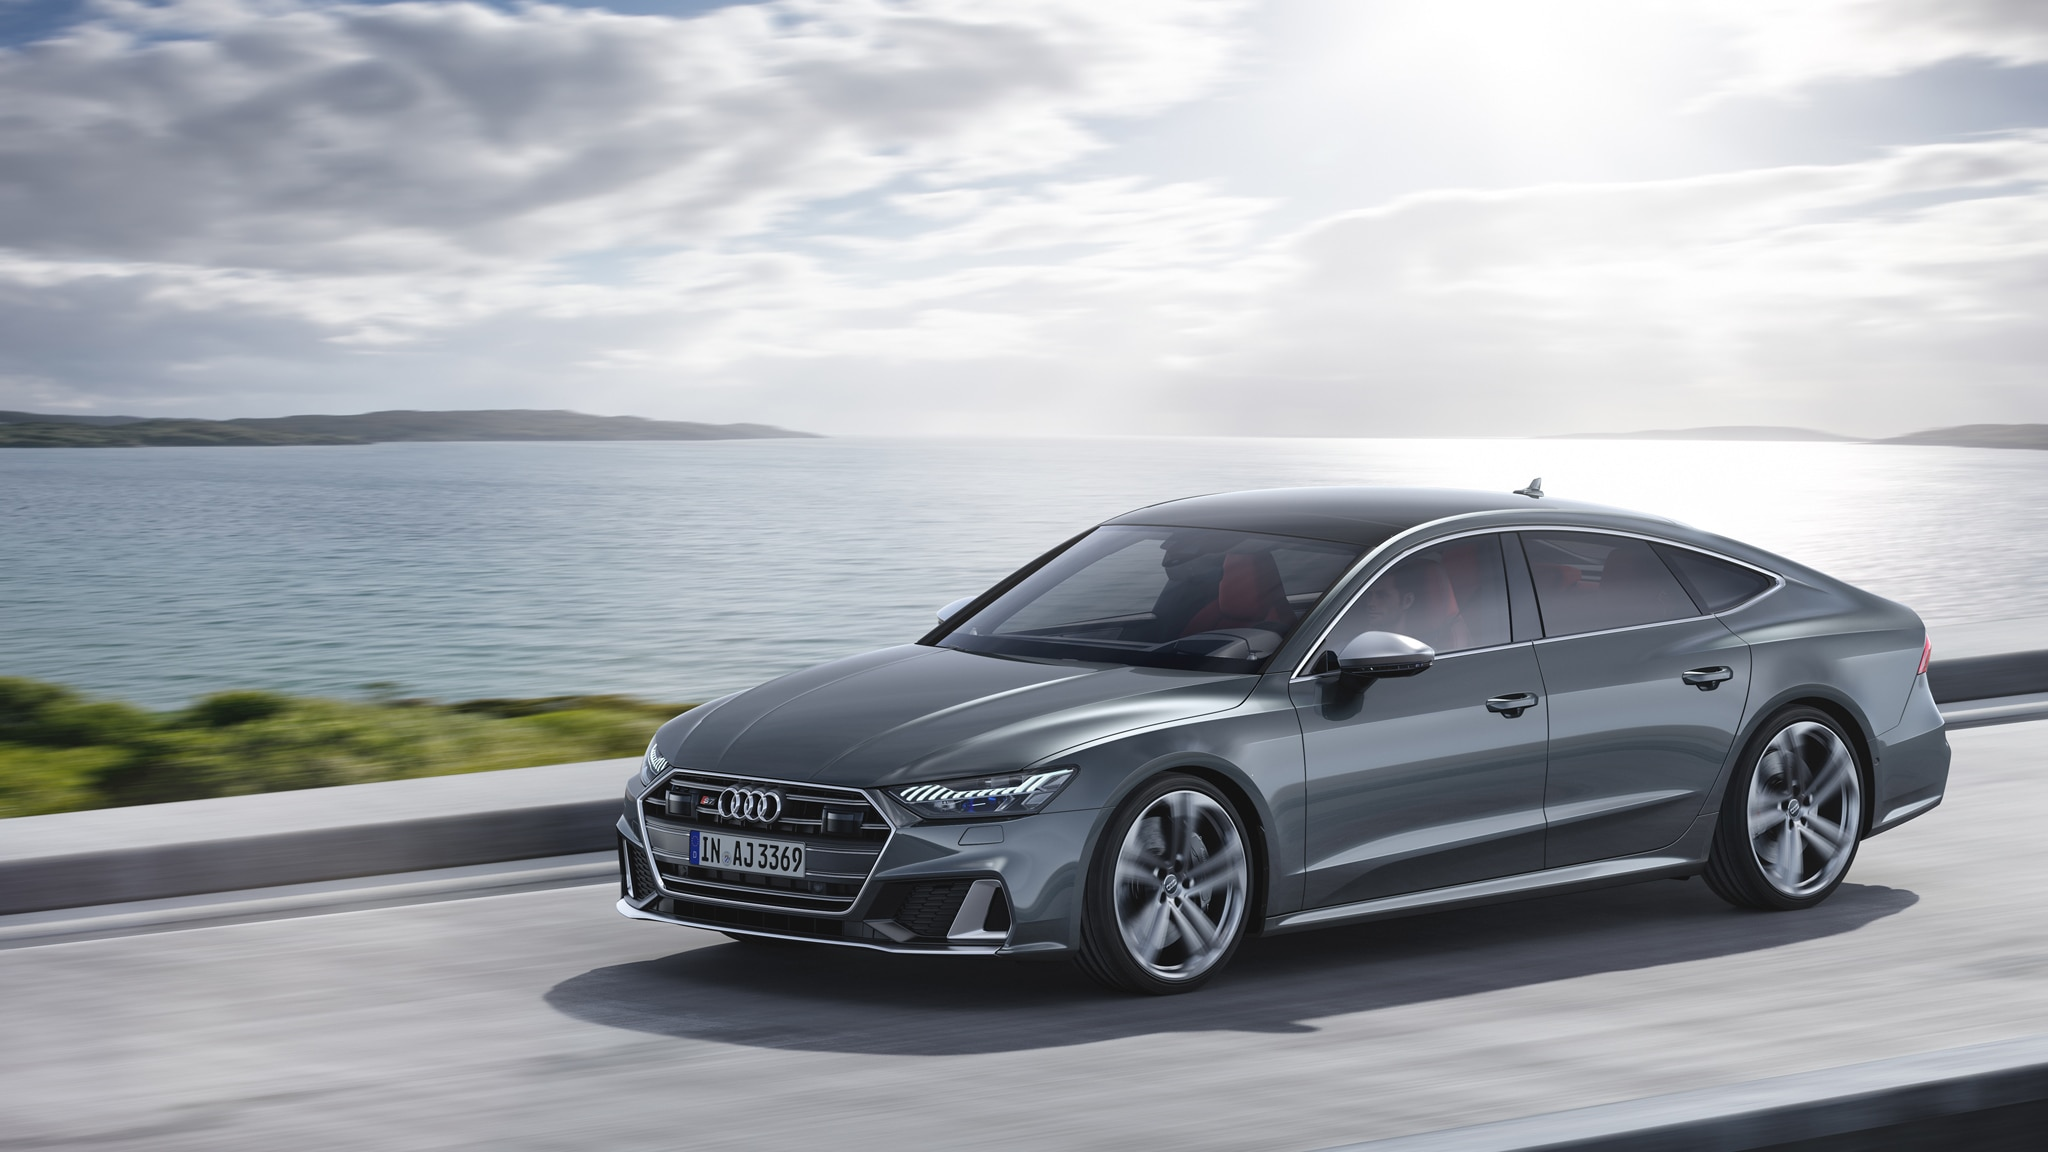 2020 audi s6 and s7 debut  look mighty tasty